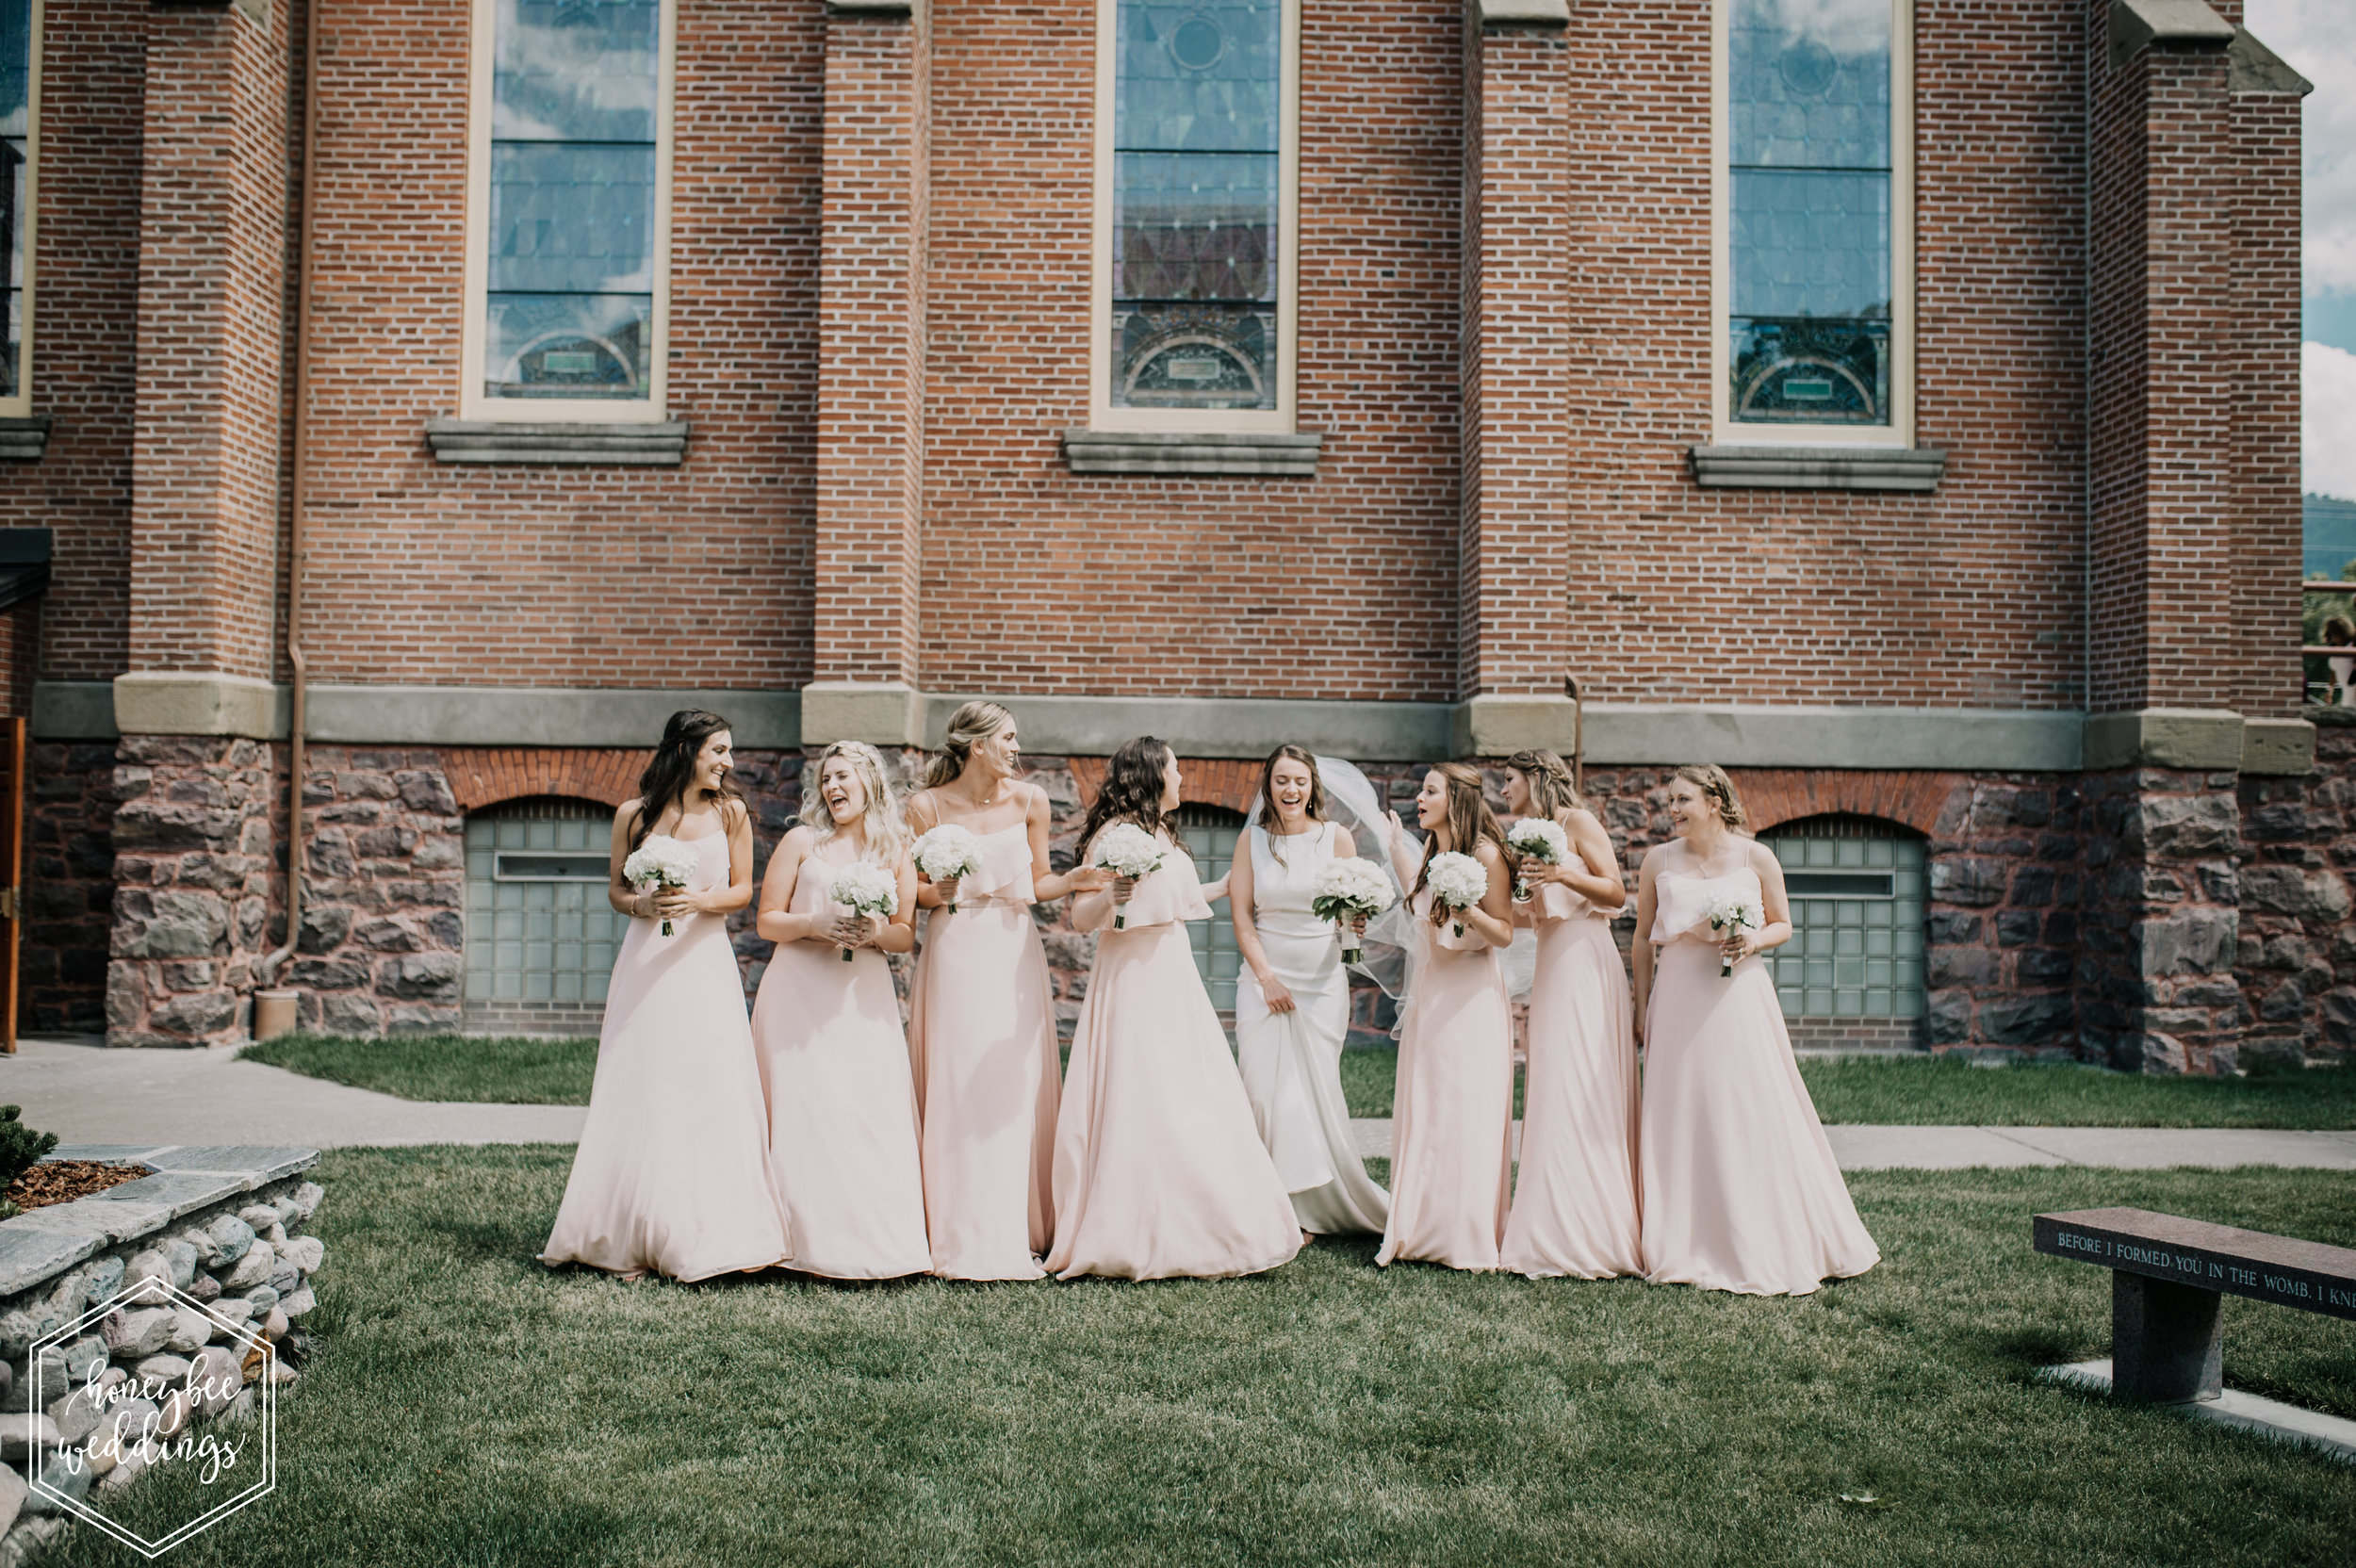 57 Montana Wedding Photographer_St. Francis Wedding_Tifani Zanto + Ryan Burke -6470.jpg